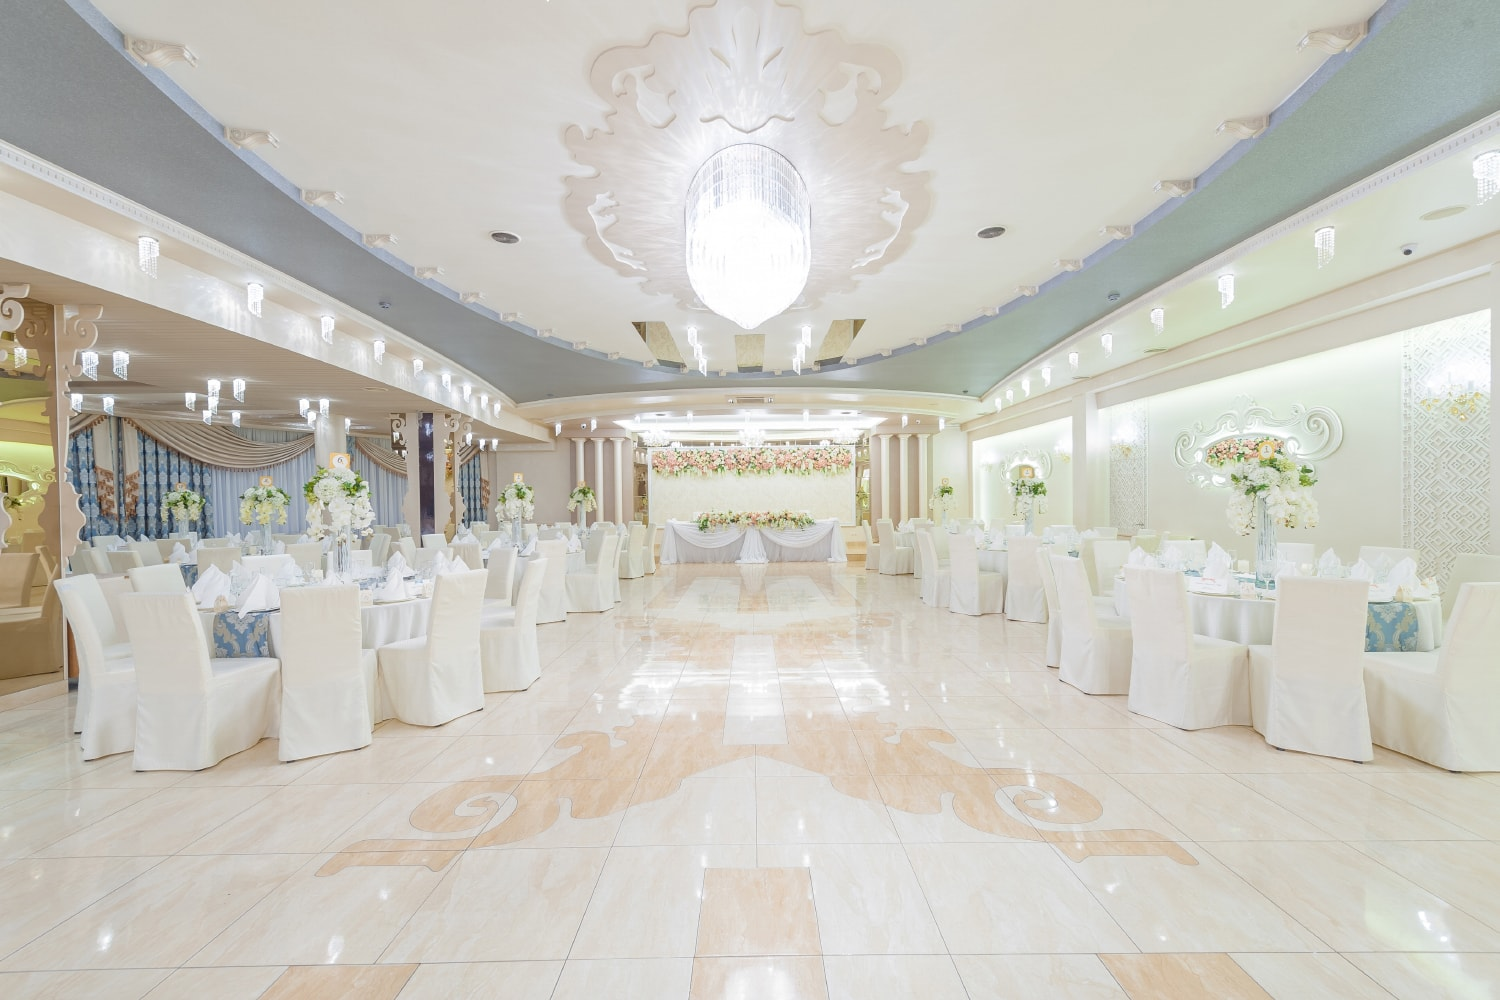 wranovsky-commercial-projects-crystal-chandeliers.jpg